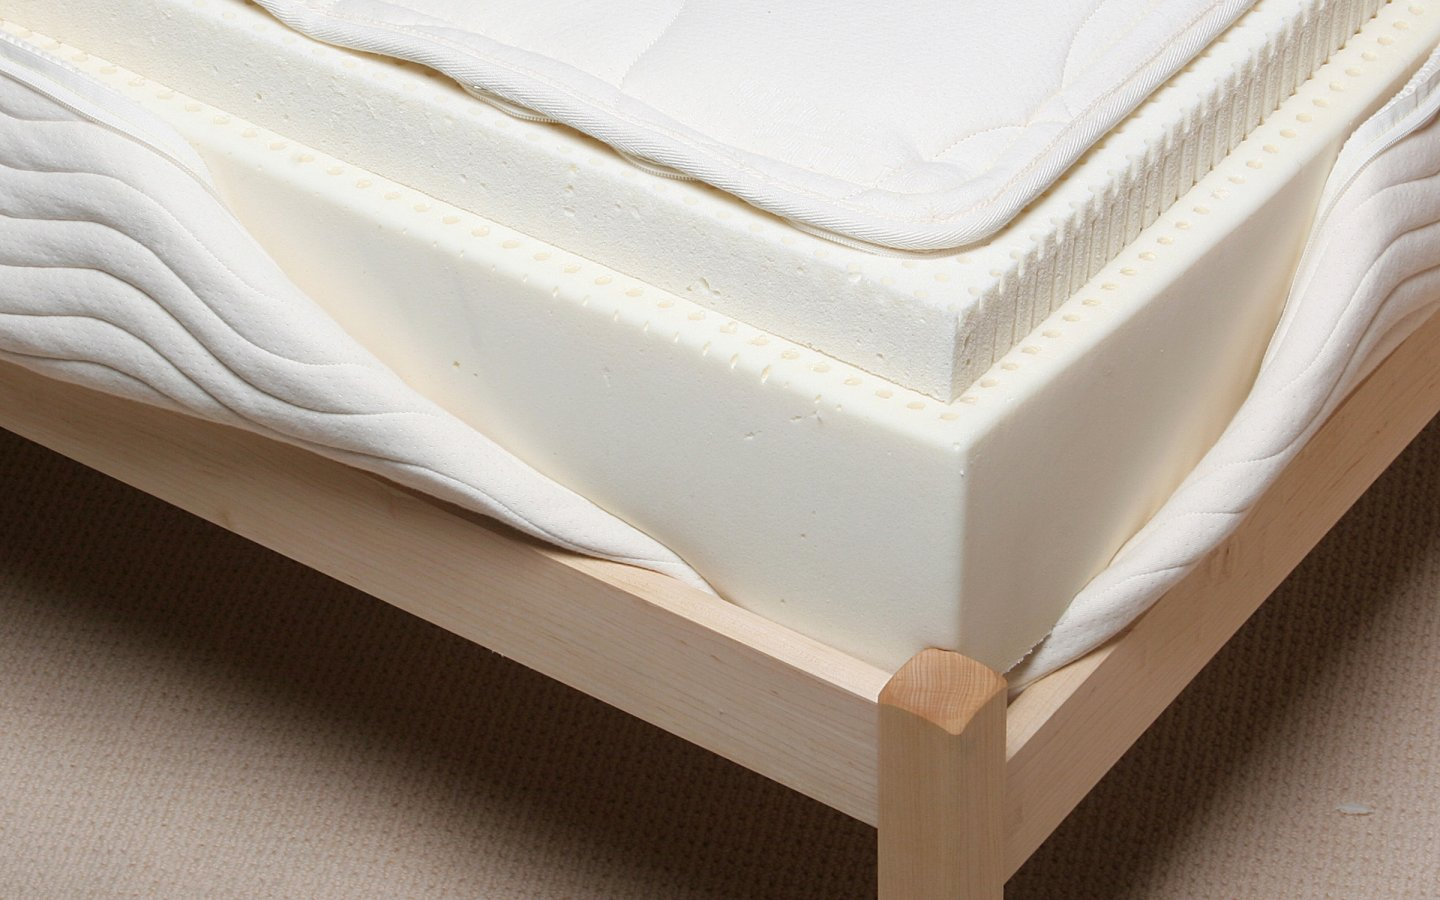 Detailed view of 8 inch latex mattress showing 2 layers of natural Talalay latex.